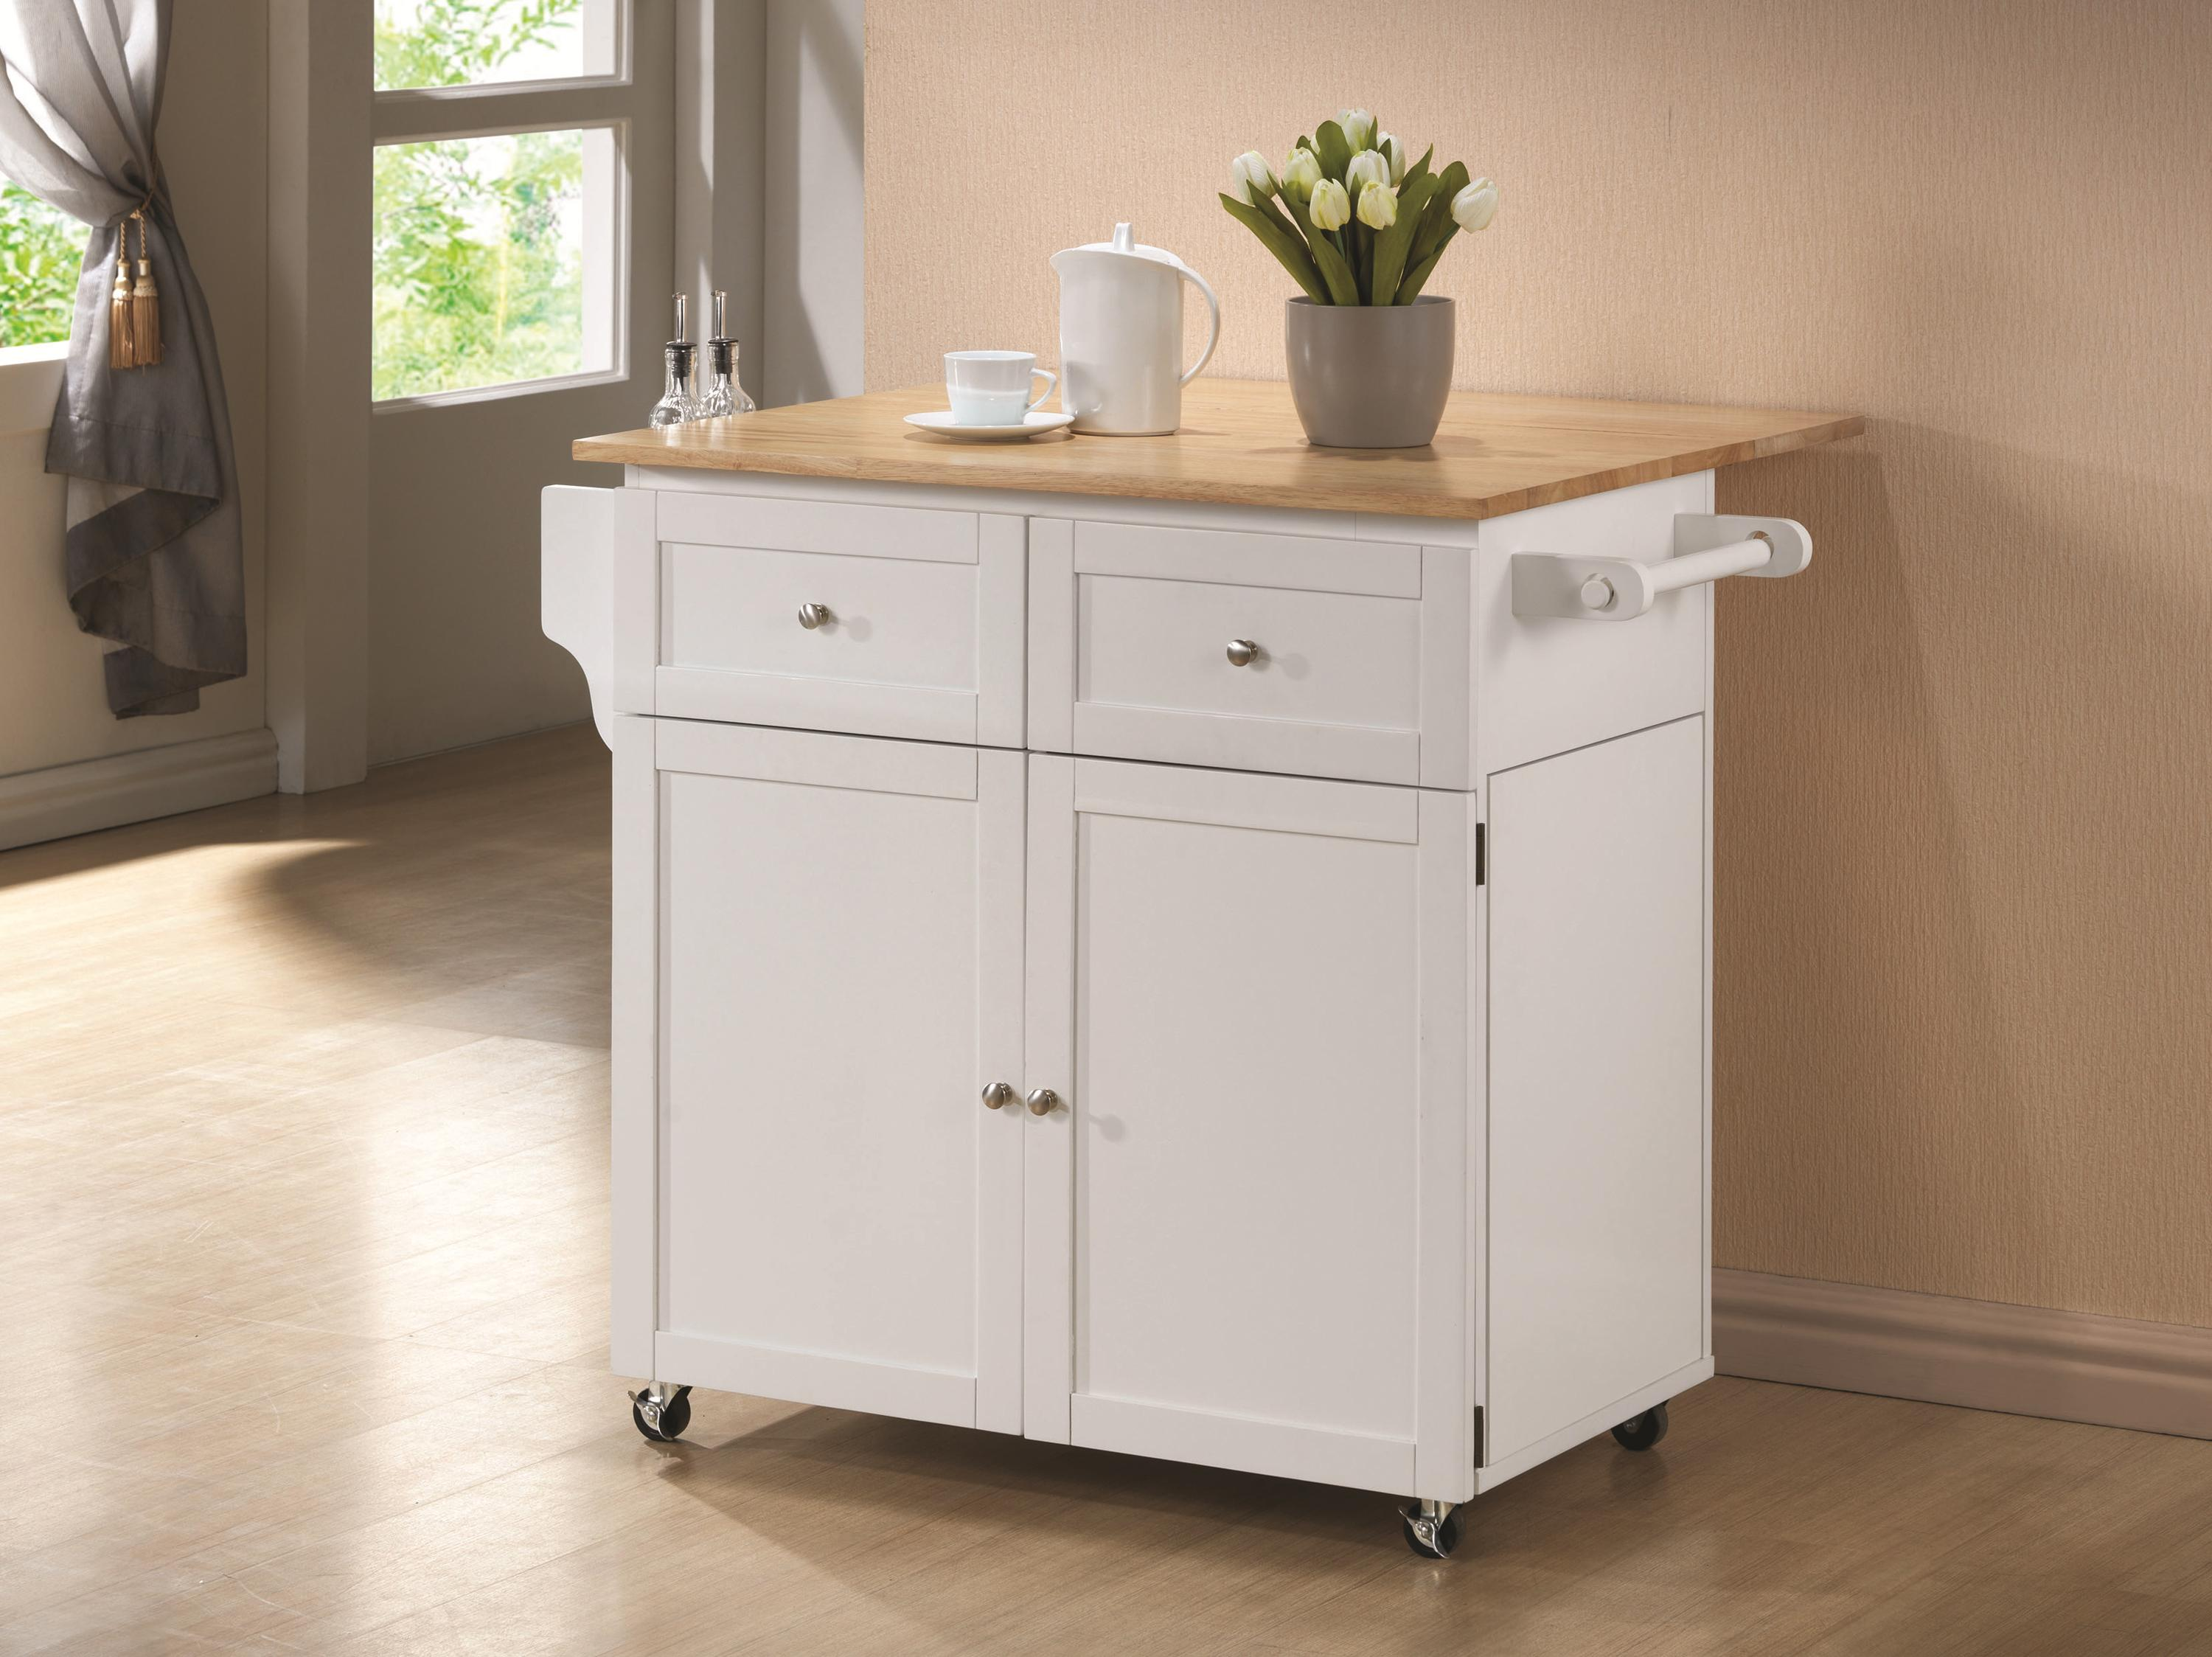 White kitchen cart for extra storage